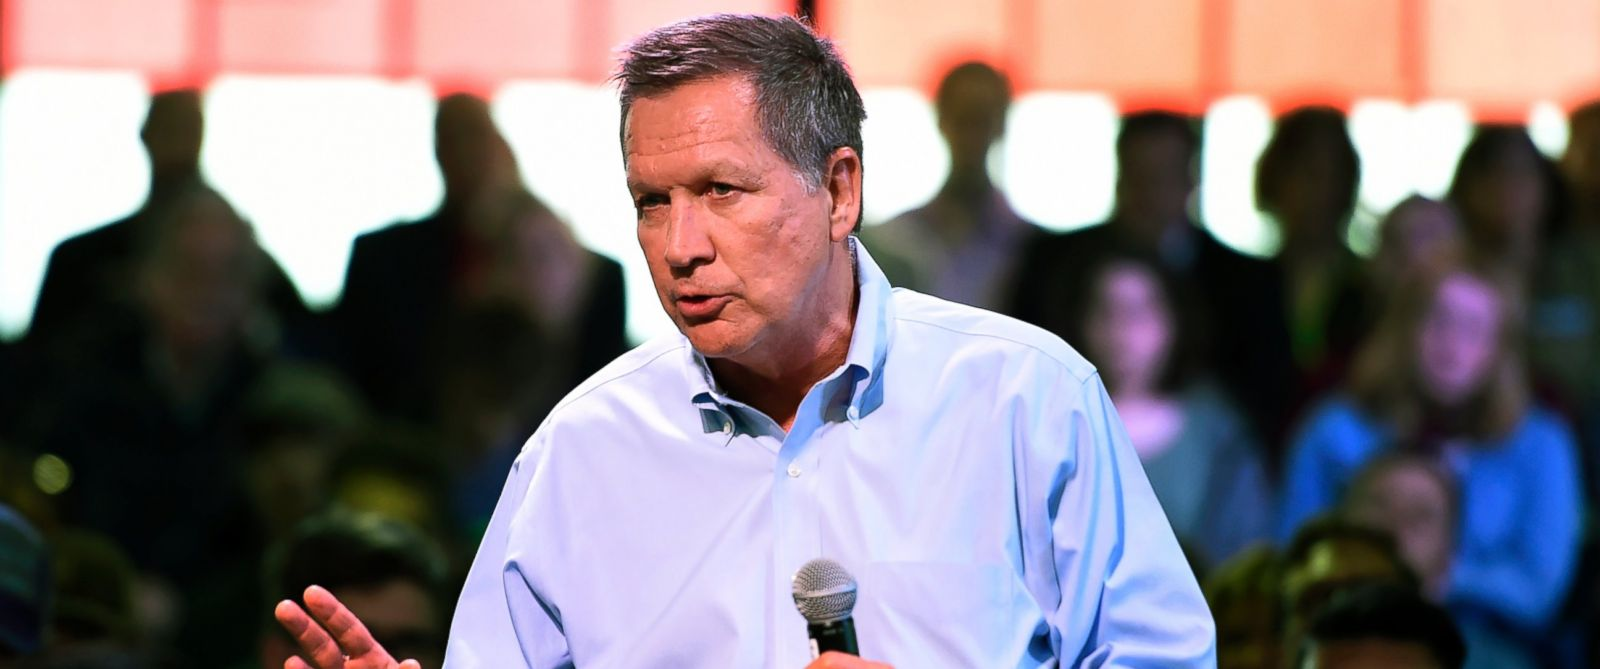 Kasich: Republicans Who Are 'Scaring' Hispanic Voters May Hurt GOP in General Election